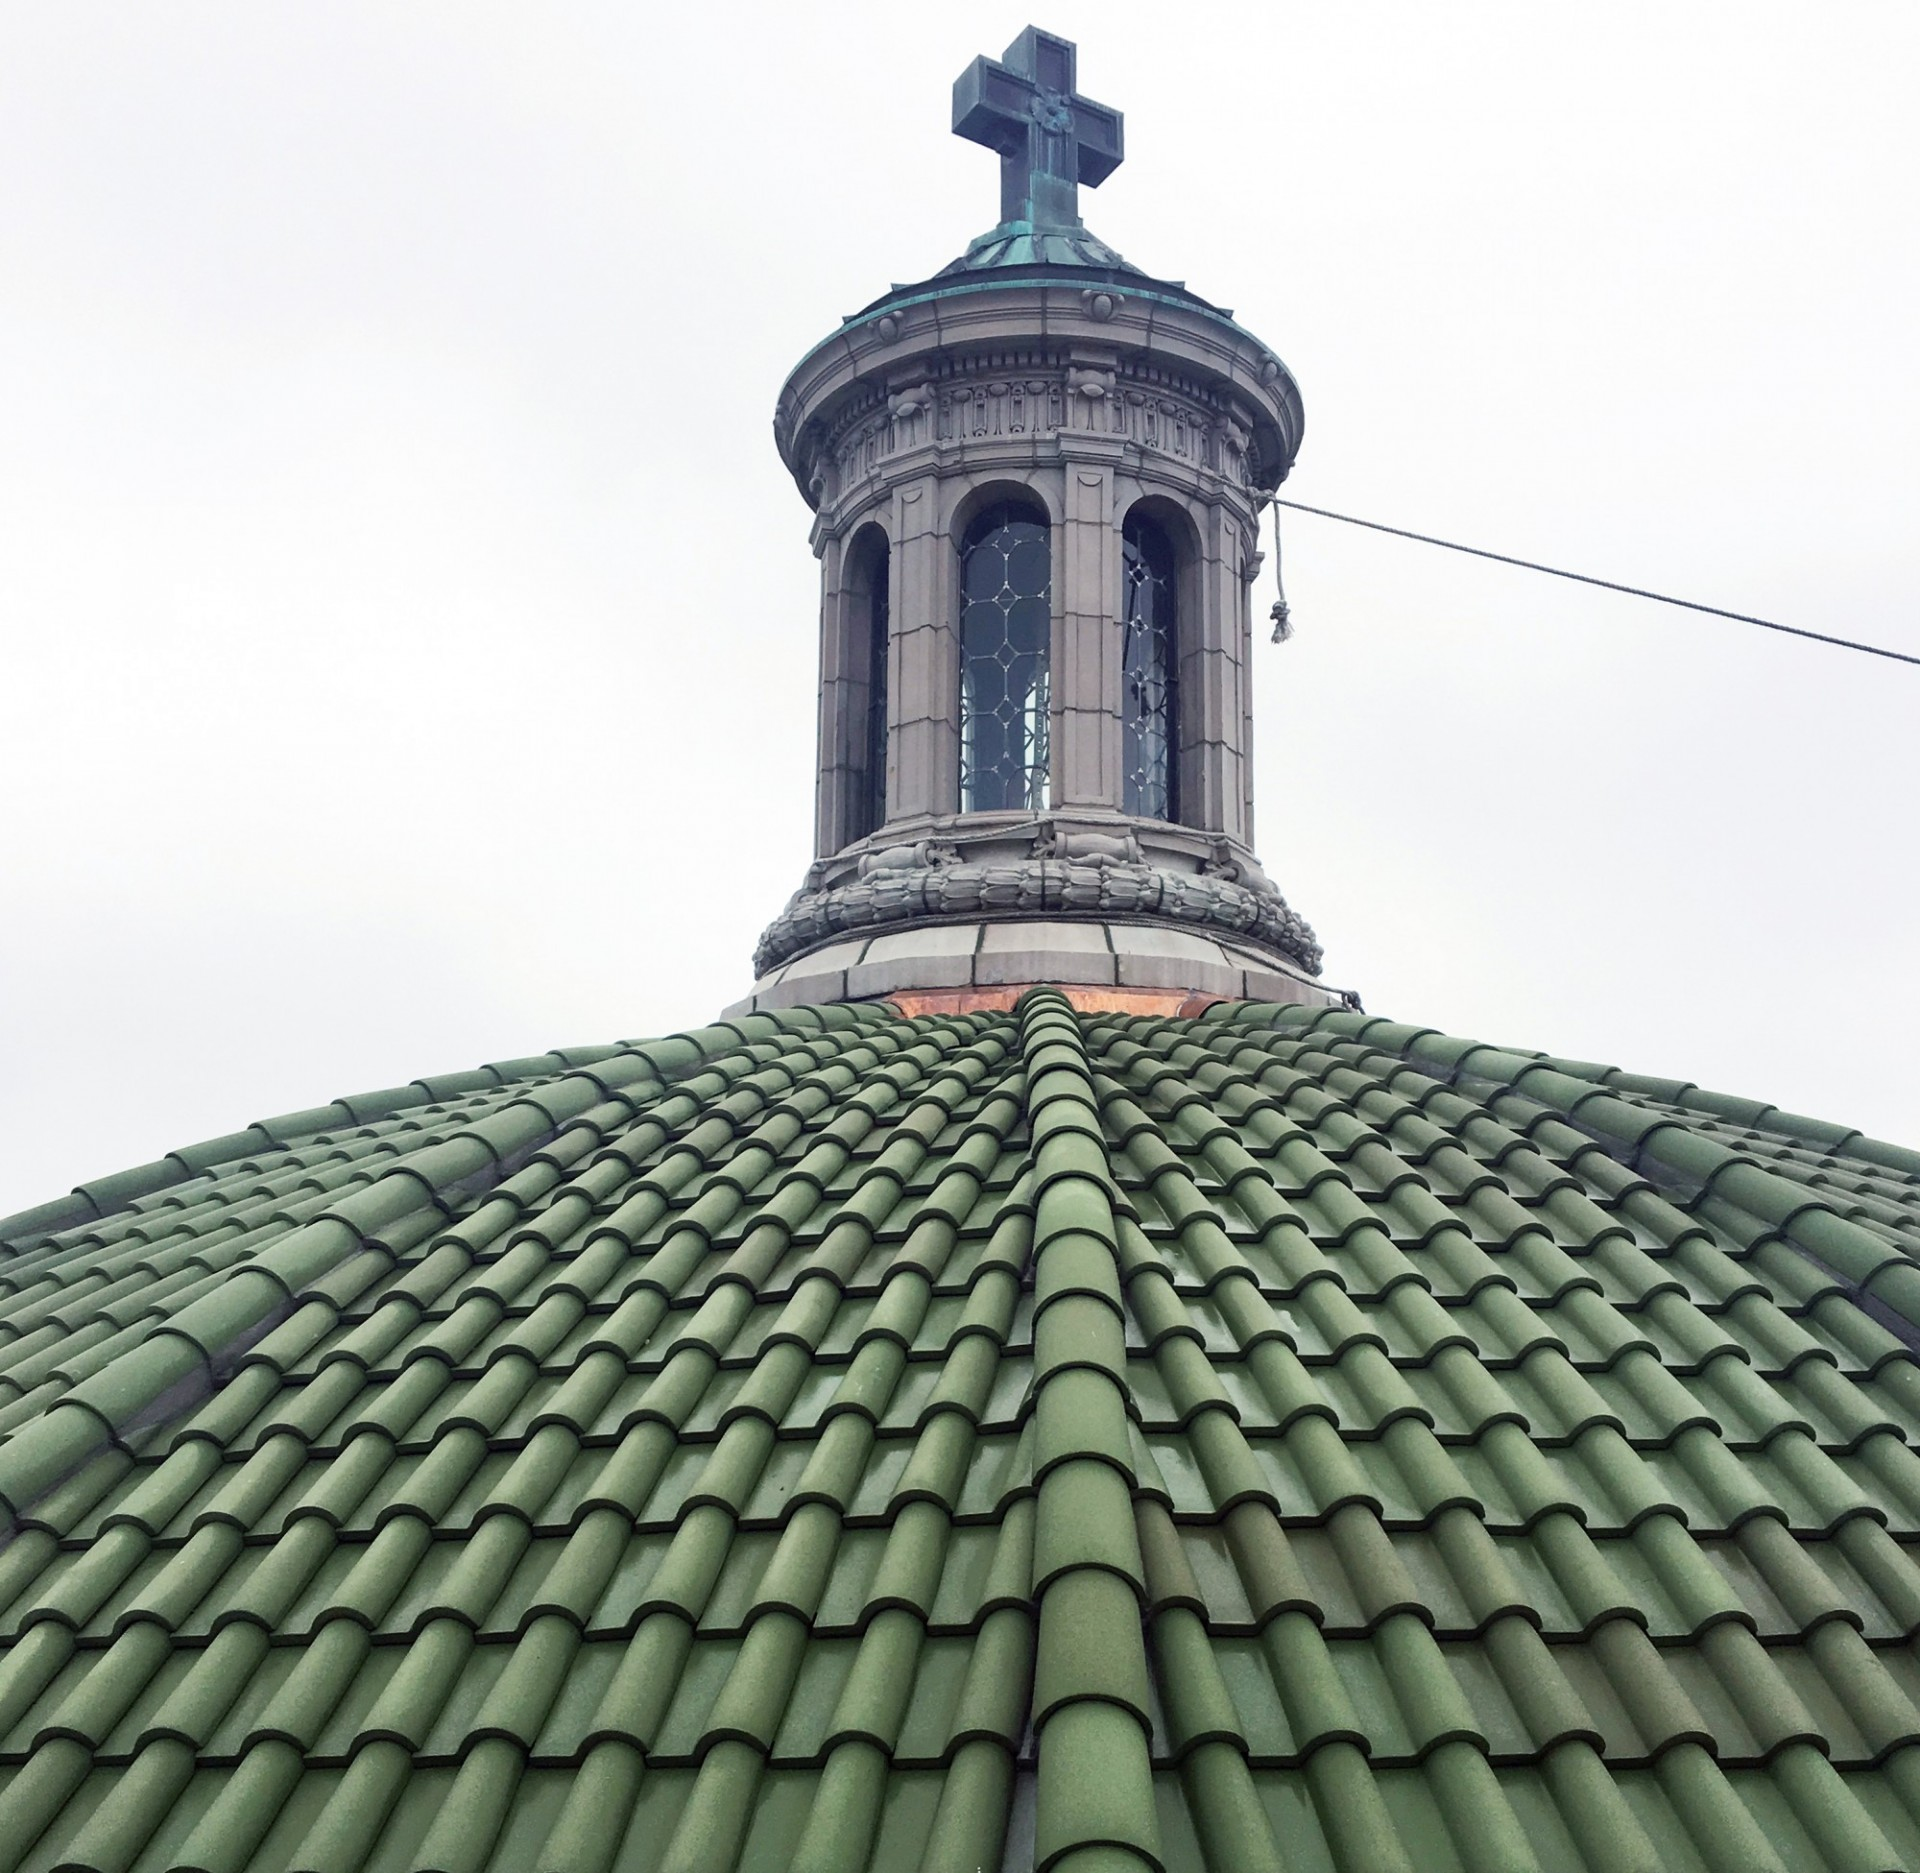 The new roof on the St. Paul's Chapel upper dome.